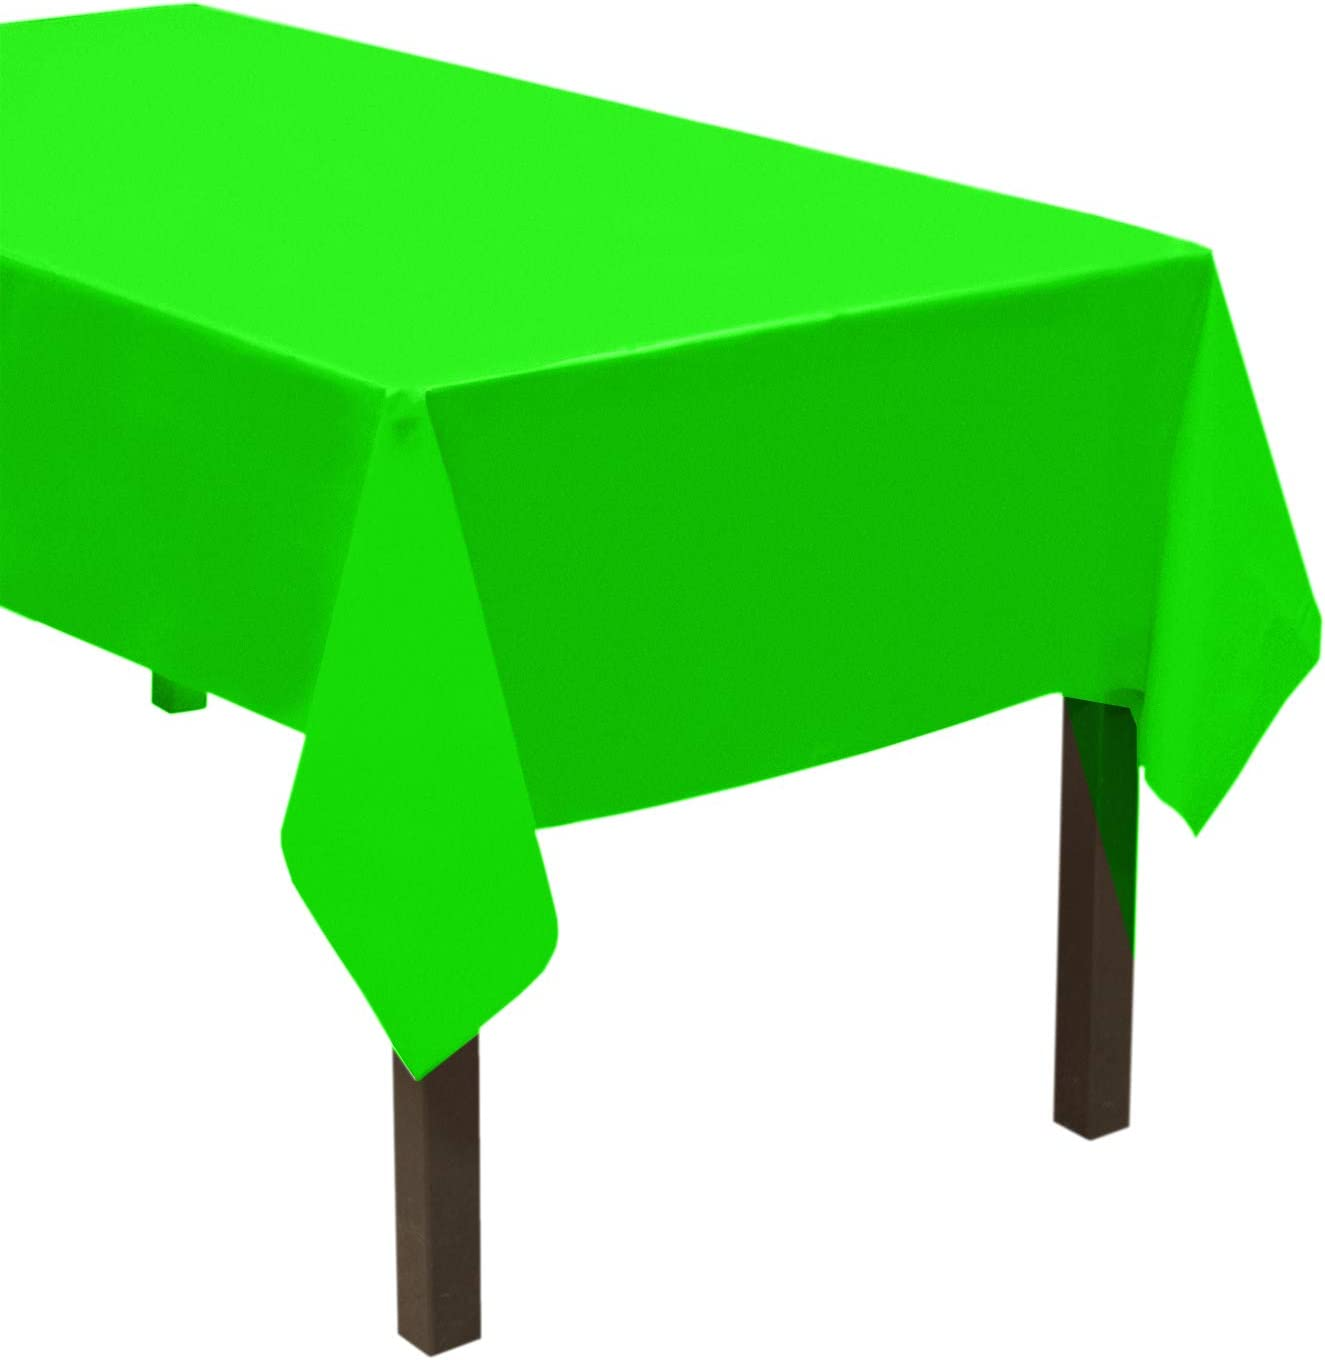 Party Essentials Heavy Duty Plastic Table Cover Available in 44 Colors, 54